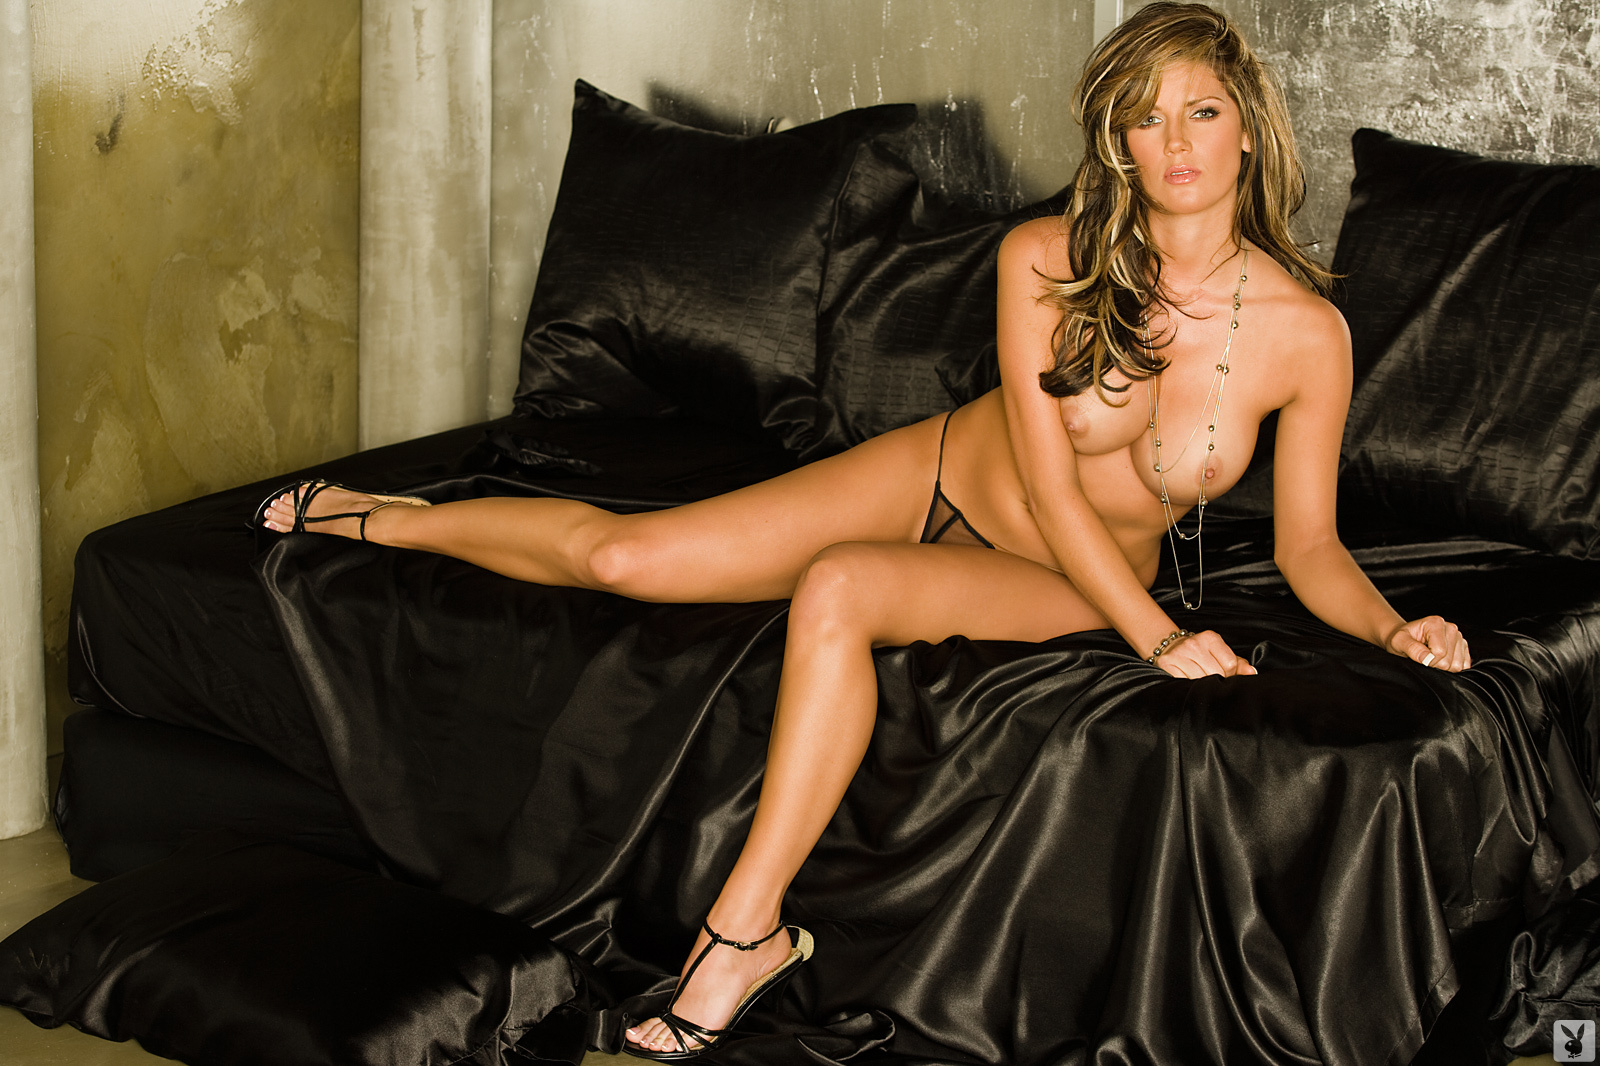 Playmate Exclusive May 2009 Crystal Mccahill0005